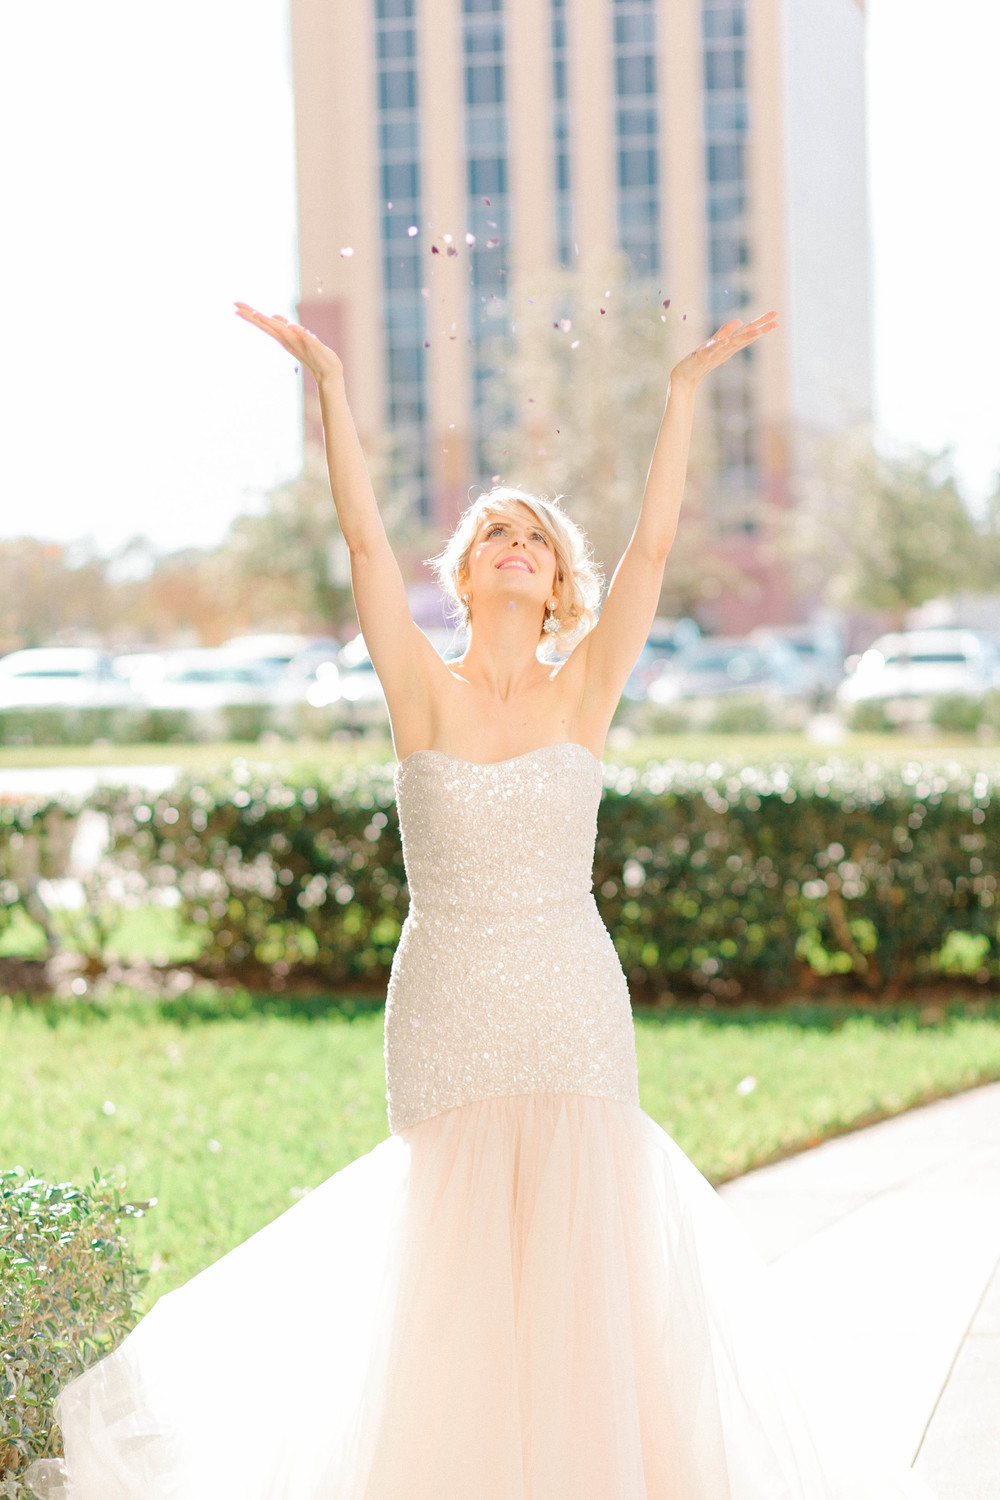 Adorable Bridal Photo - Oh Hello Events